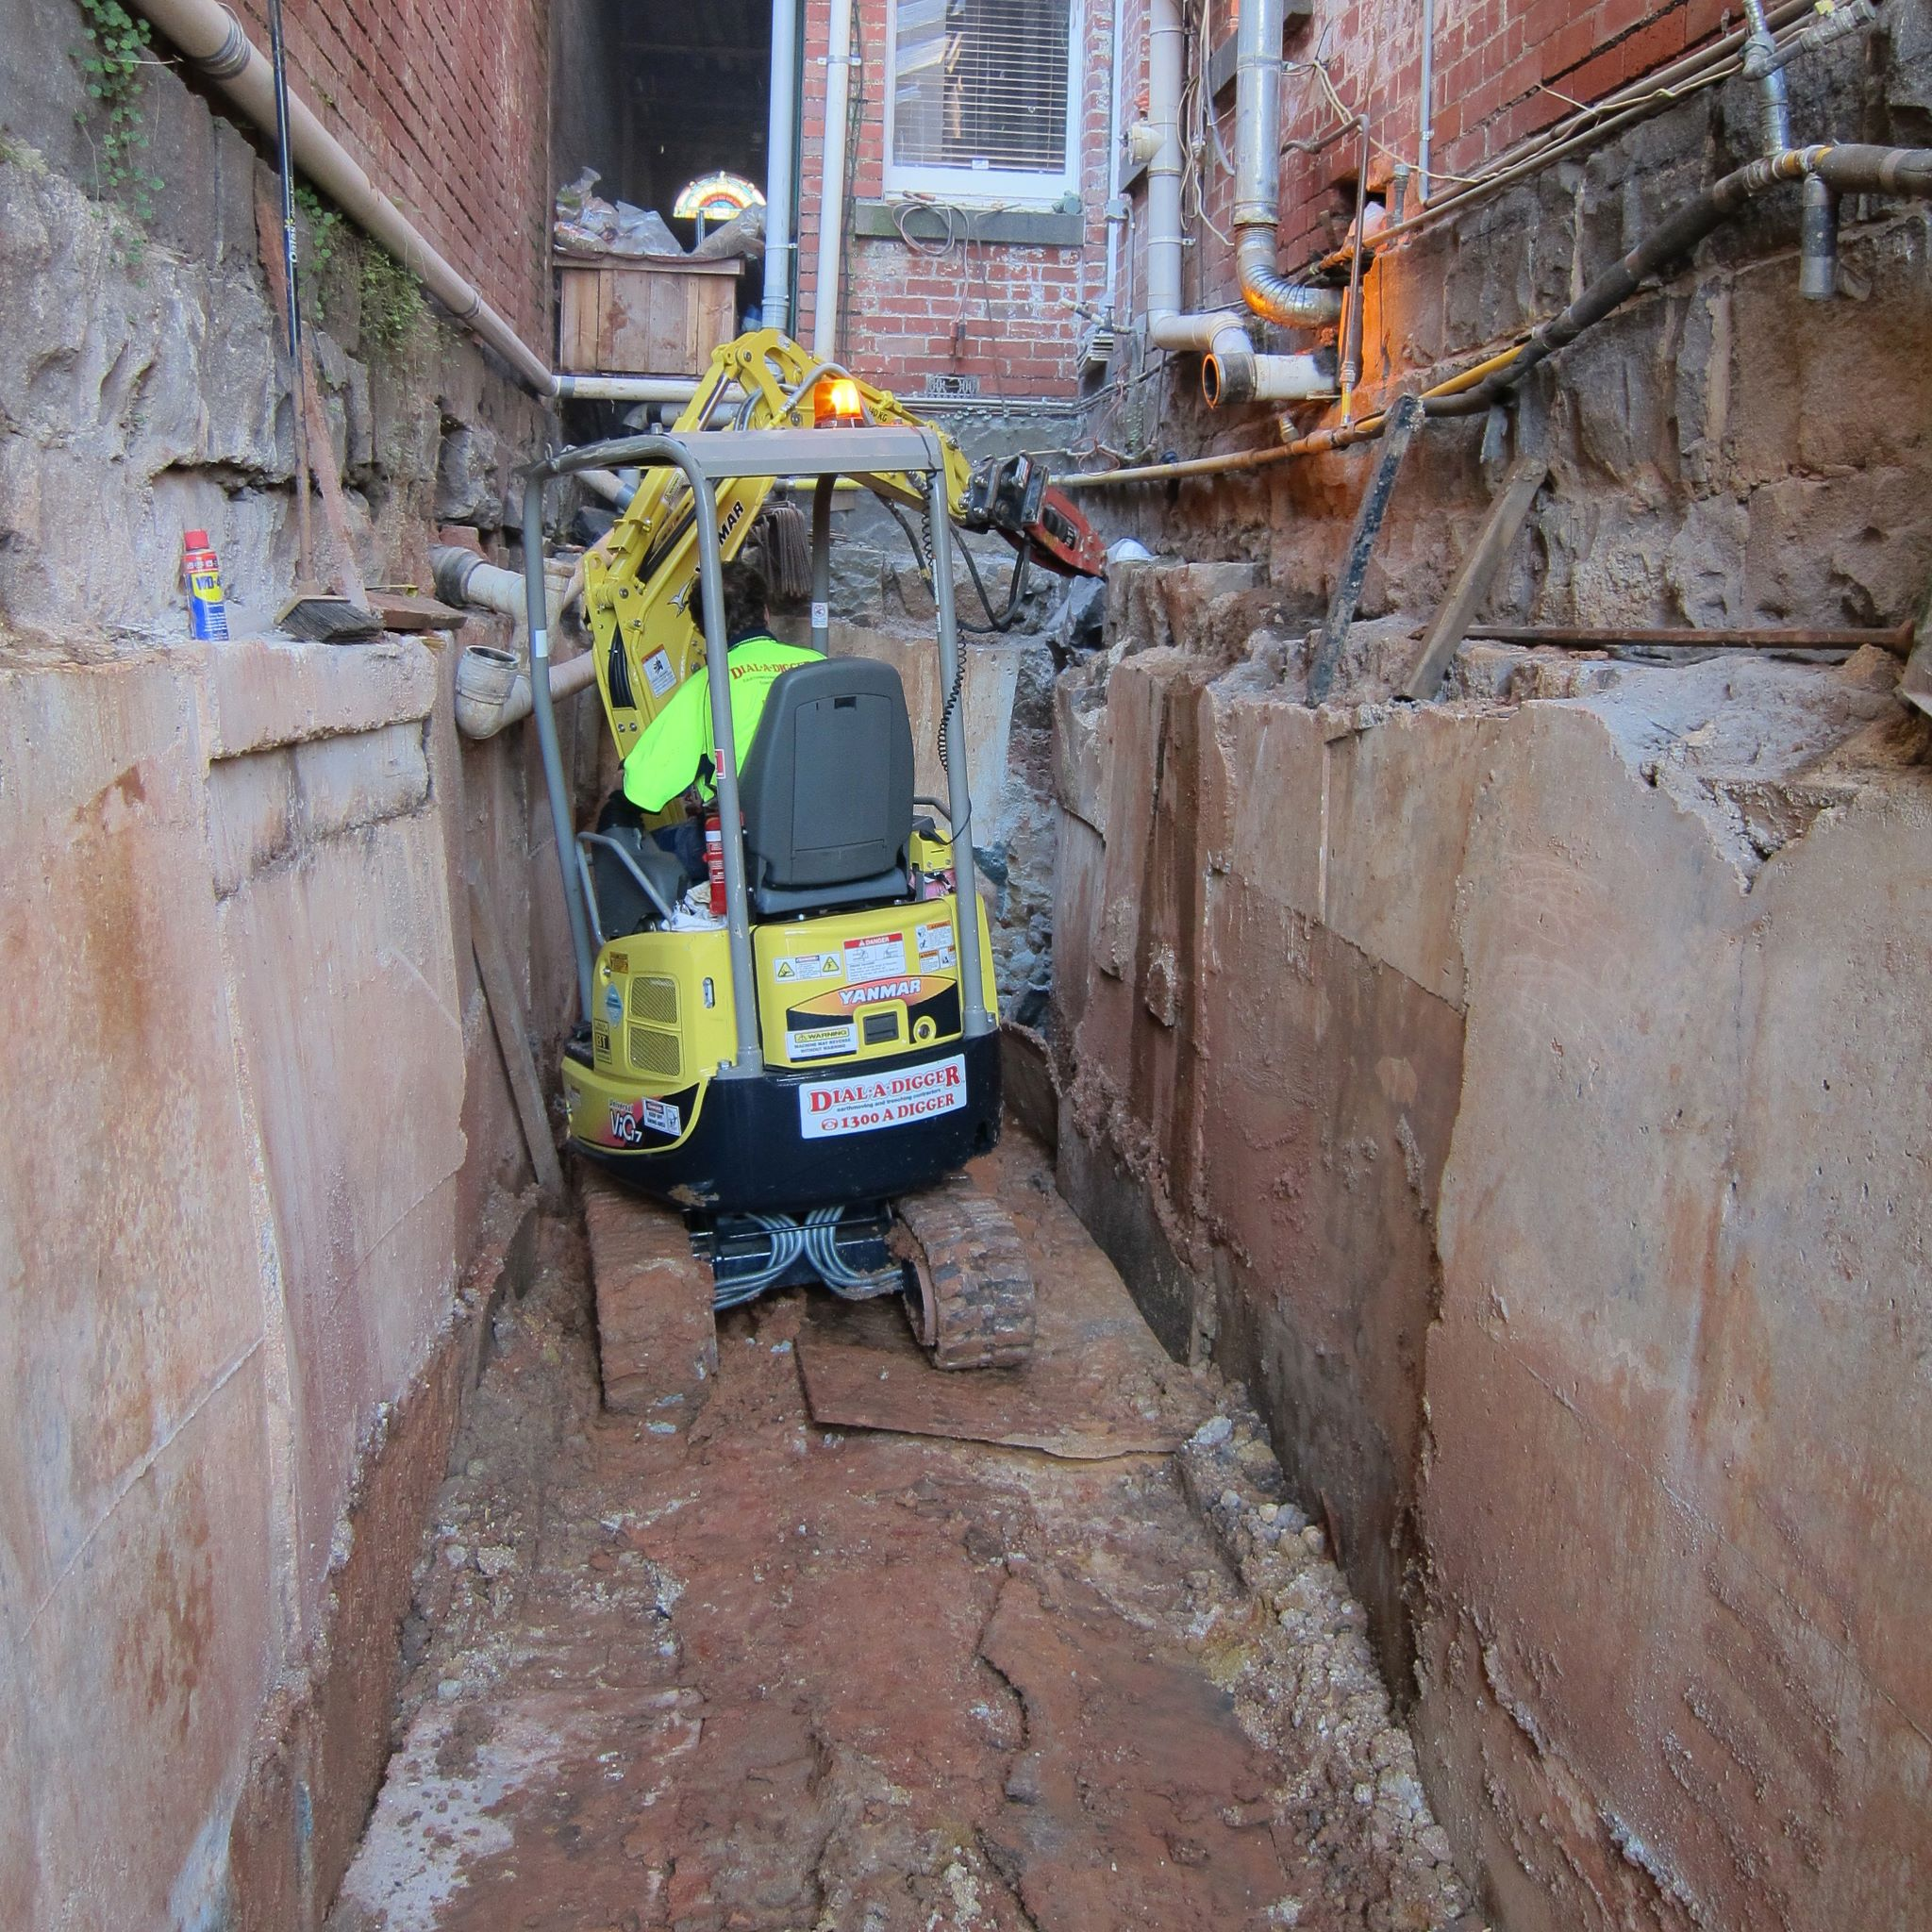 Dial-A-Digger-rock-breaker-tight-access-excavator